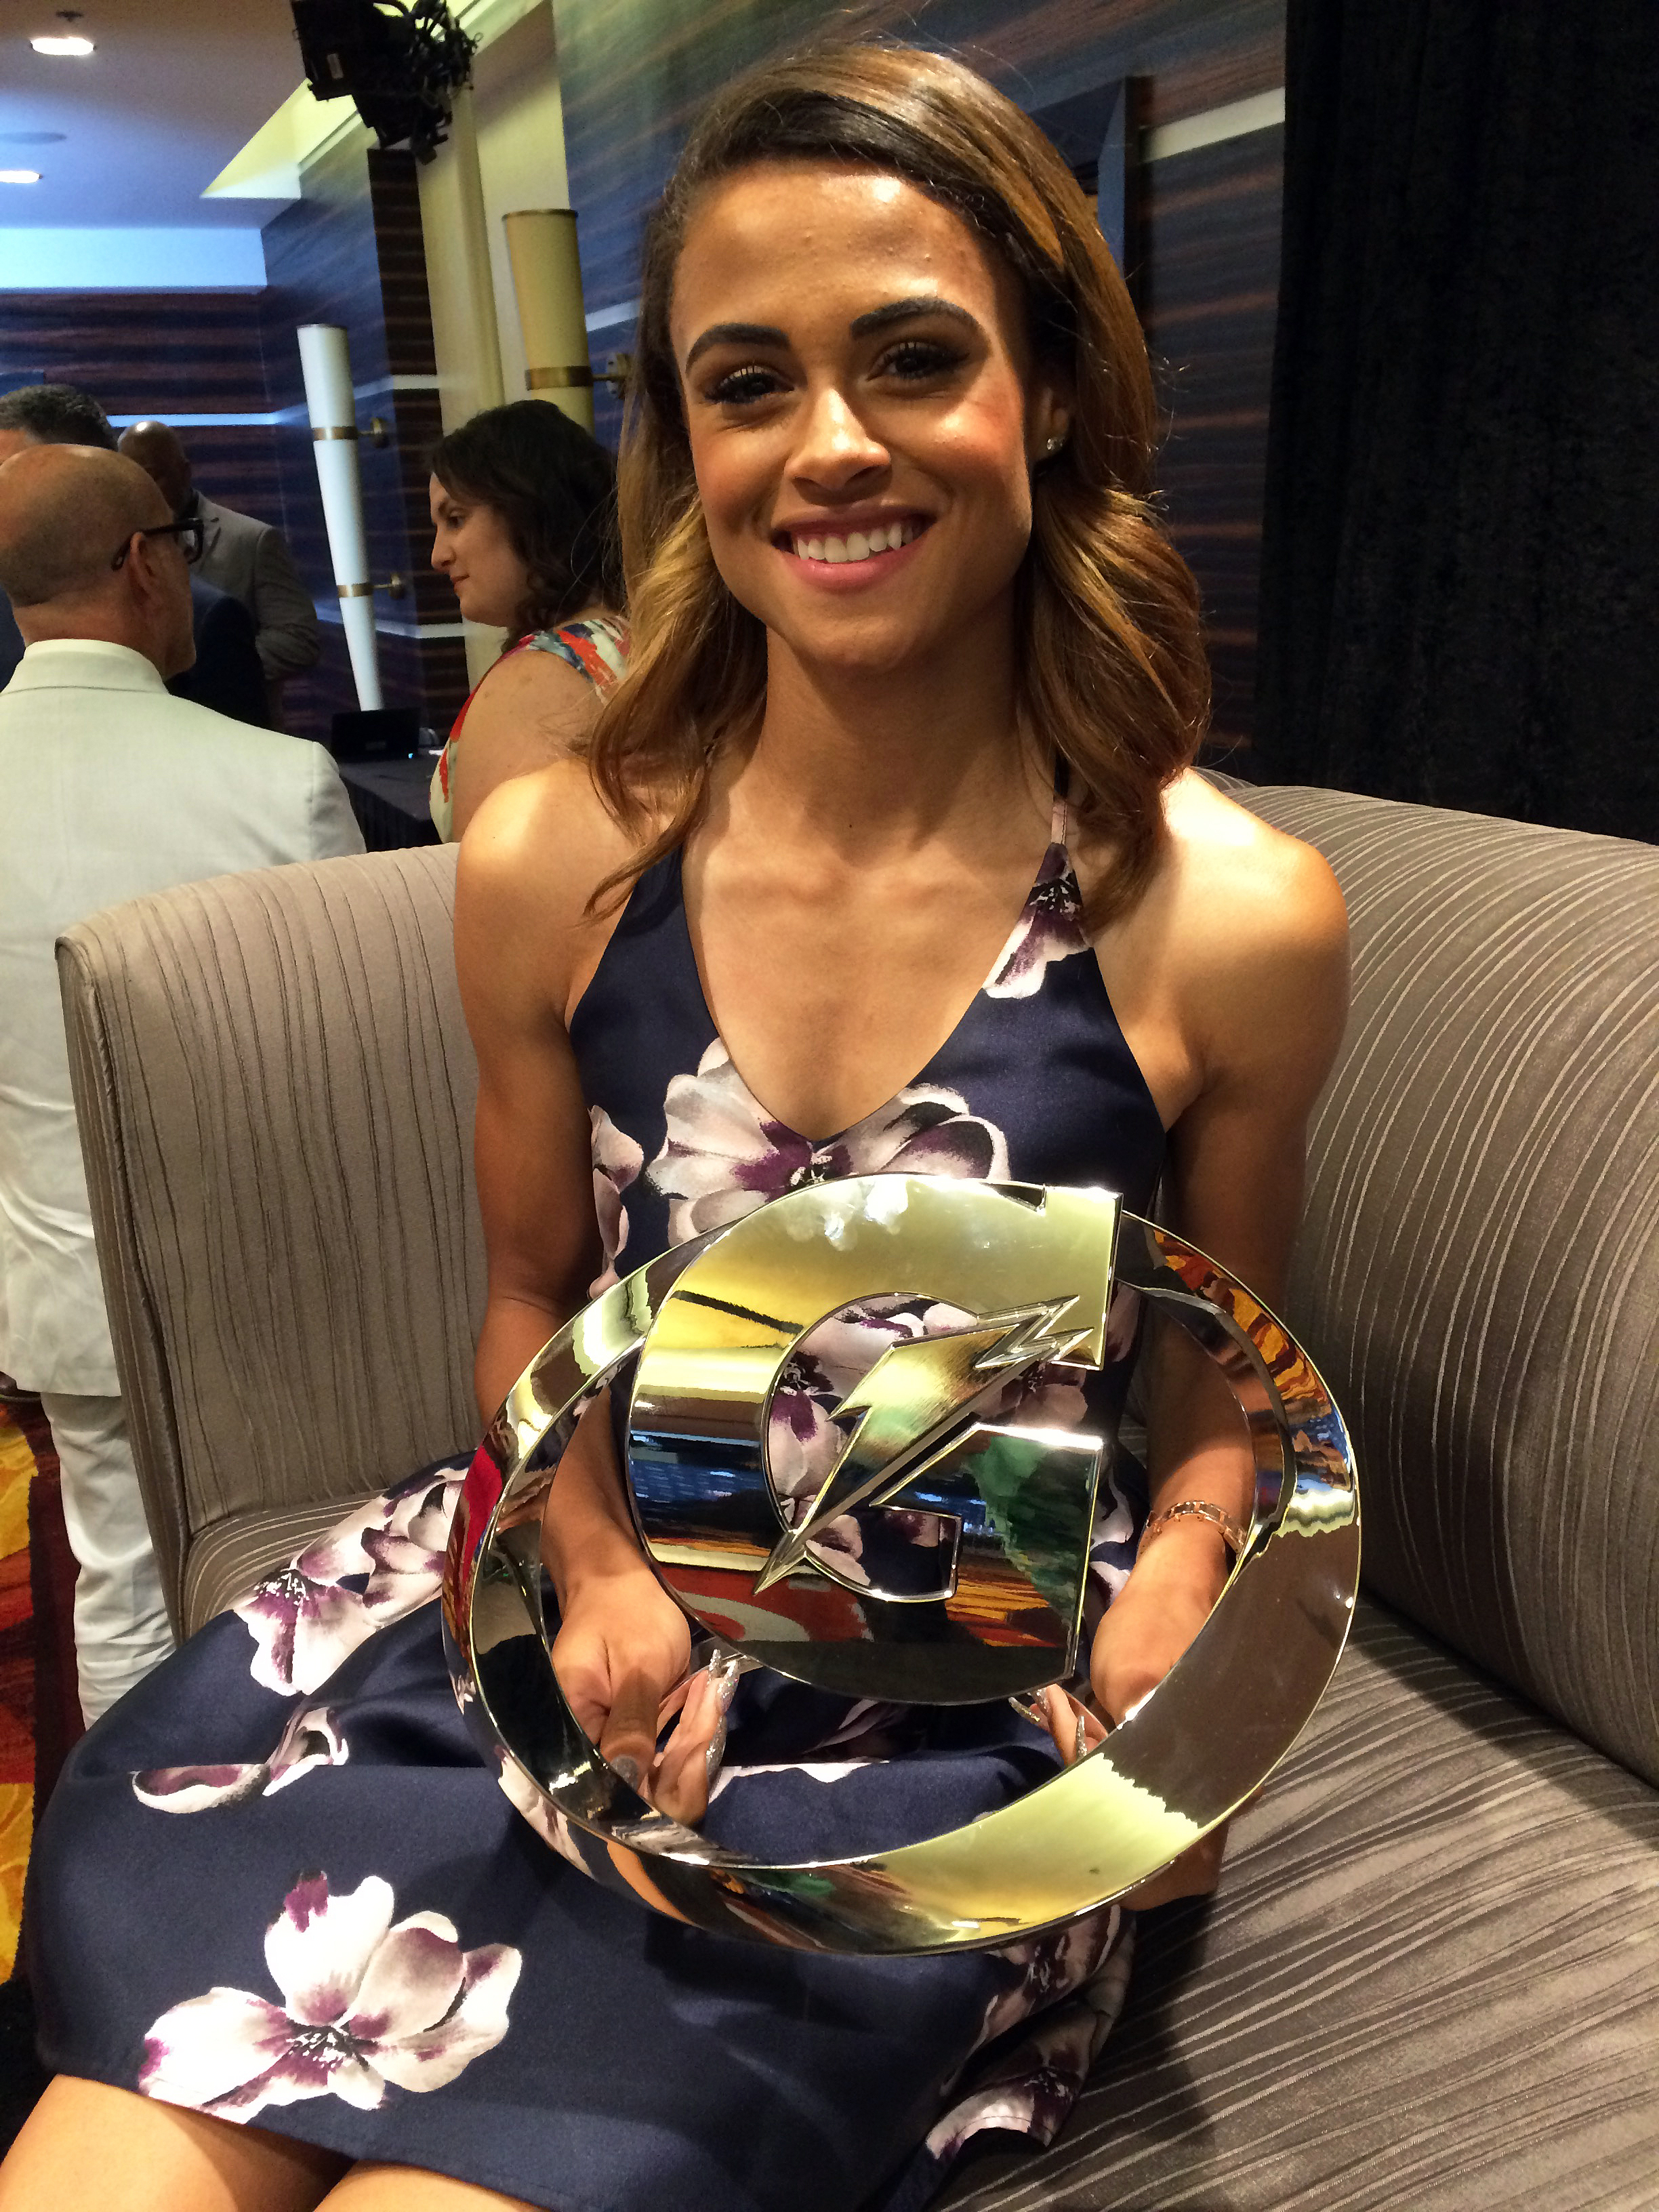 Newly minted Olympic hurdler and sprinter Sydney McLaughlin, holds her award after she was honored, along with Jayson Tatum (not pictured), a forward headed to Duke, as the national prep athletes of the year Tuesday night, July 12, 2016, in Los Angeles. M